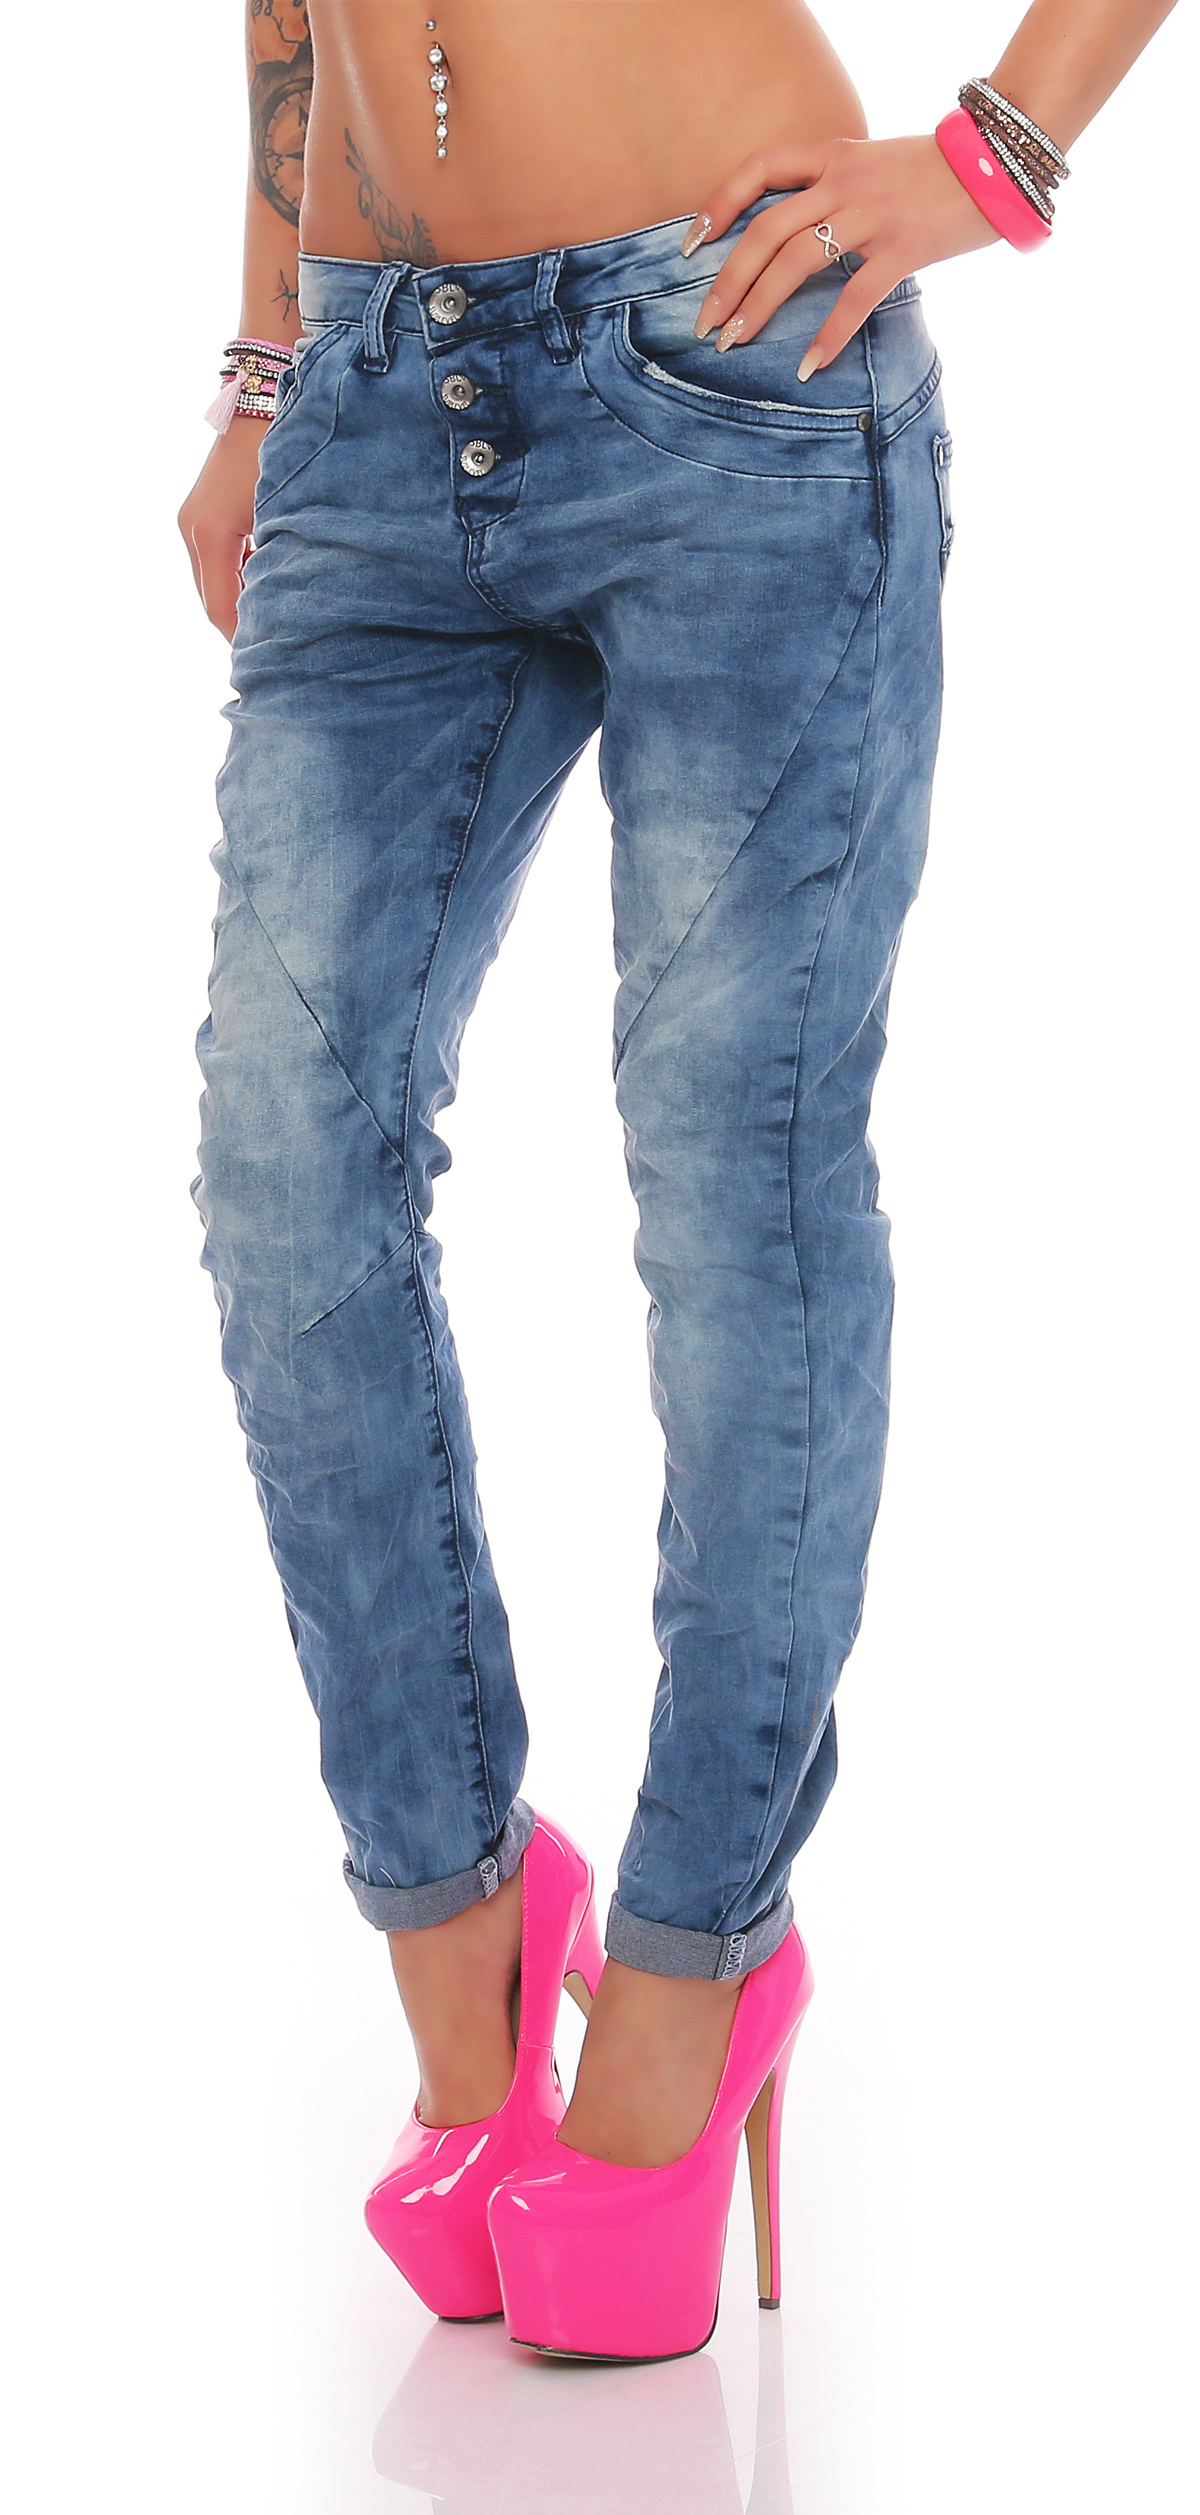 sublevel damen chino jeans boyfriend damenhose damenjeans pump pants cl109 ebay. Black Bedroom Furniture Sets. Home Design Ideas